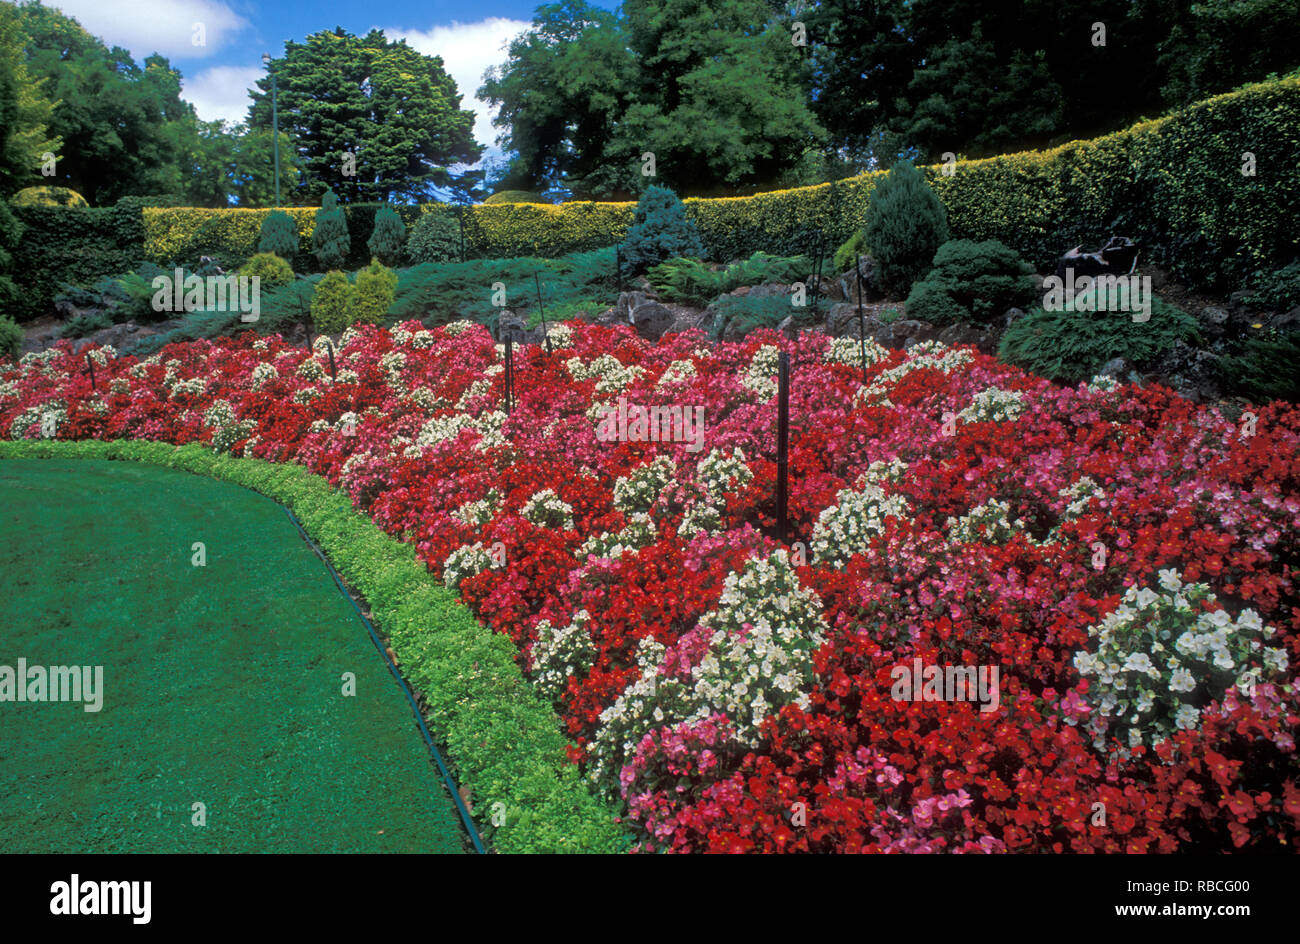 LARGE COLORFUL GARDEN BANK OF BEGONIA SEMPERVIRENS (BEDDING BEGONIAS) WITH CONIFERS, JUNIPERUS AND HEDGE OF EUONYMUS JAPONICUS. - Stock Image